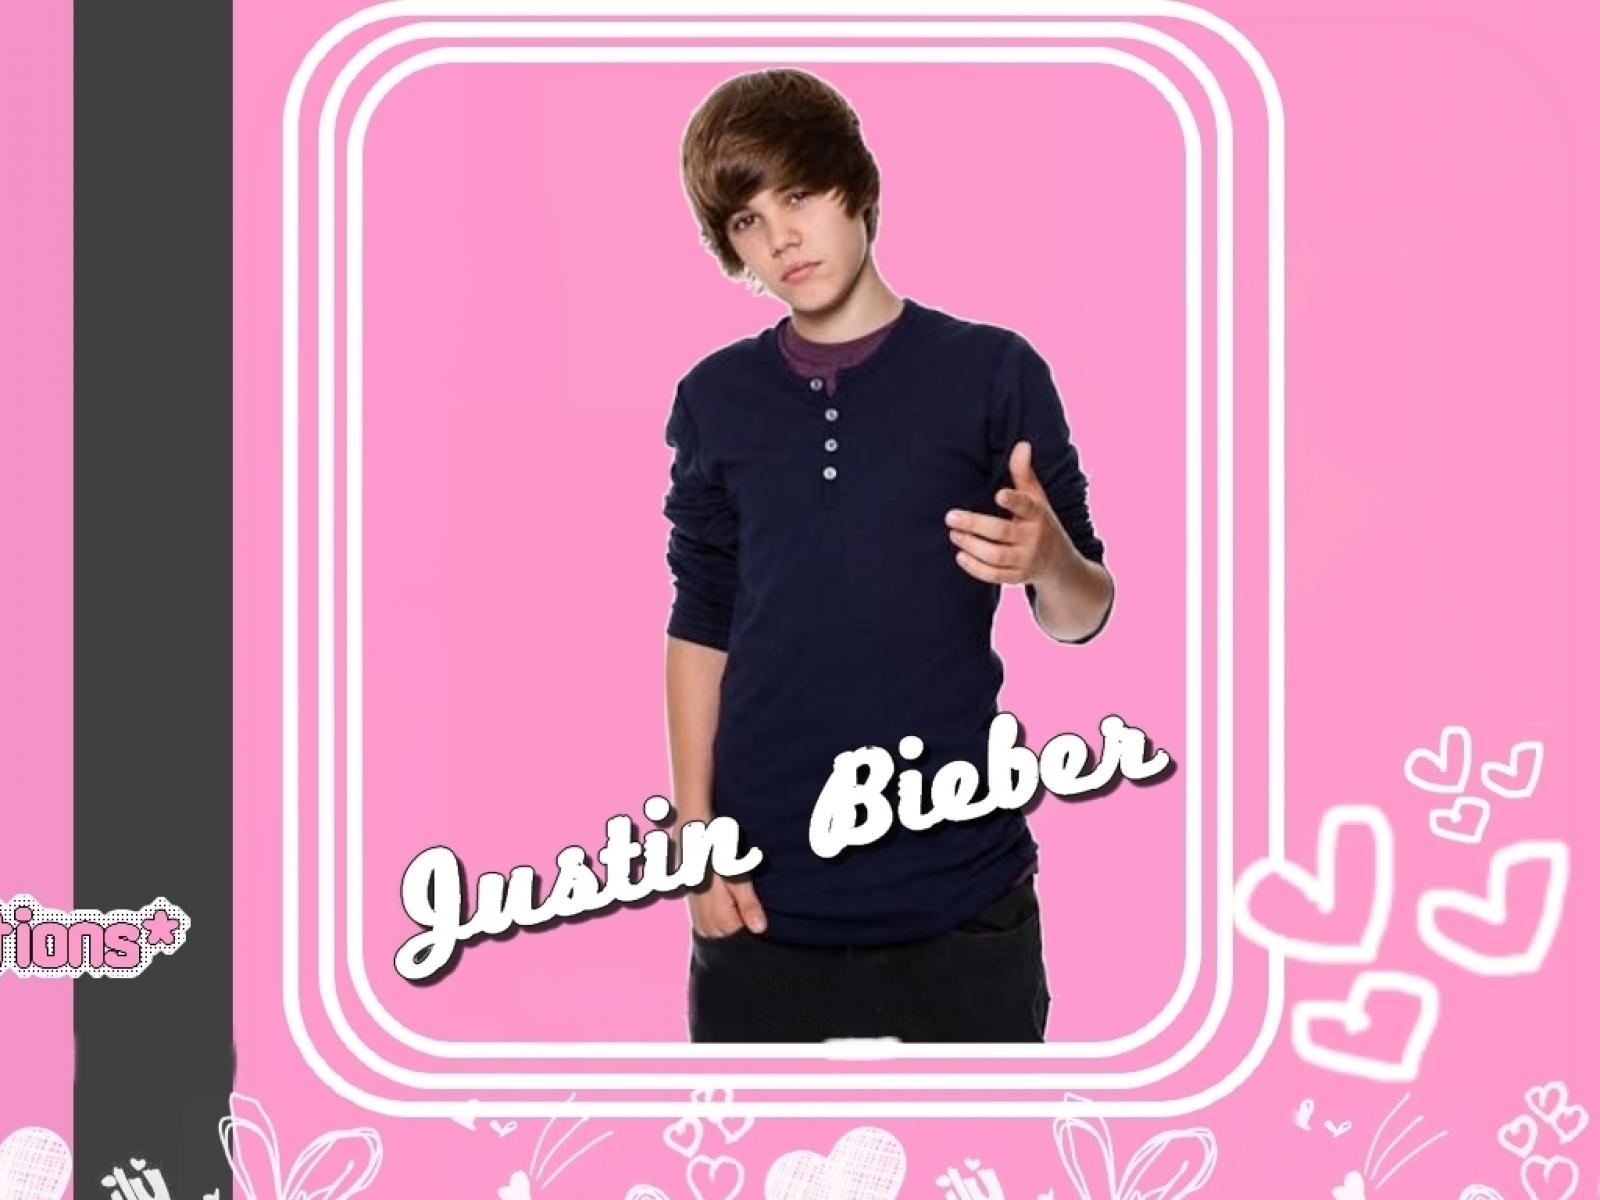 http://4.bp.blogspot.com/-fZWCrw58k78/TlBiiHr2klI/AAAAAAAAAIo/a4d65WQK6yQ/s1600/The-best-top-desktop-justin-bieber-wallpapers-justin-bieber-wallpaper-justin-bieber-background.jpg